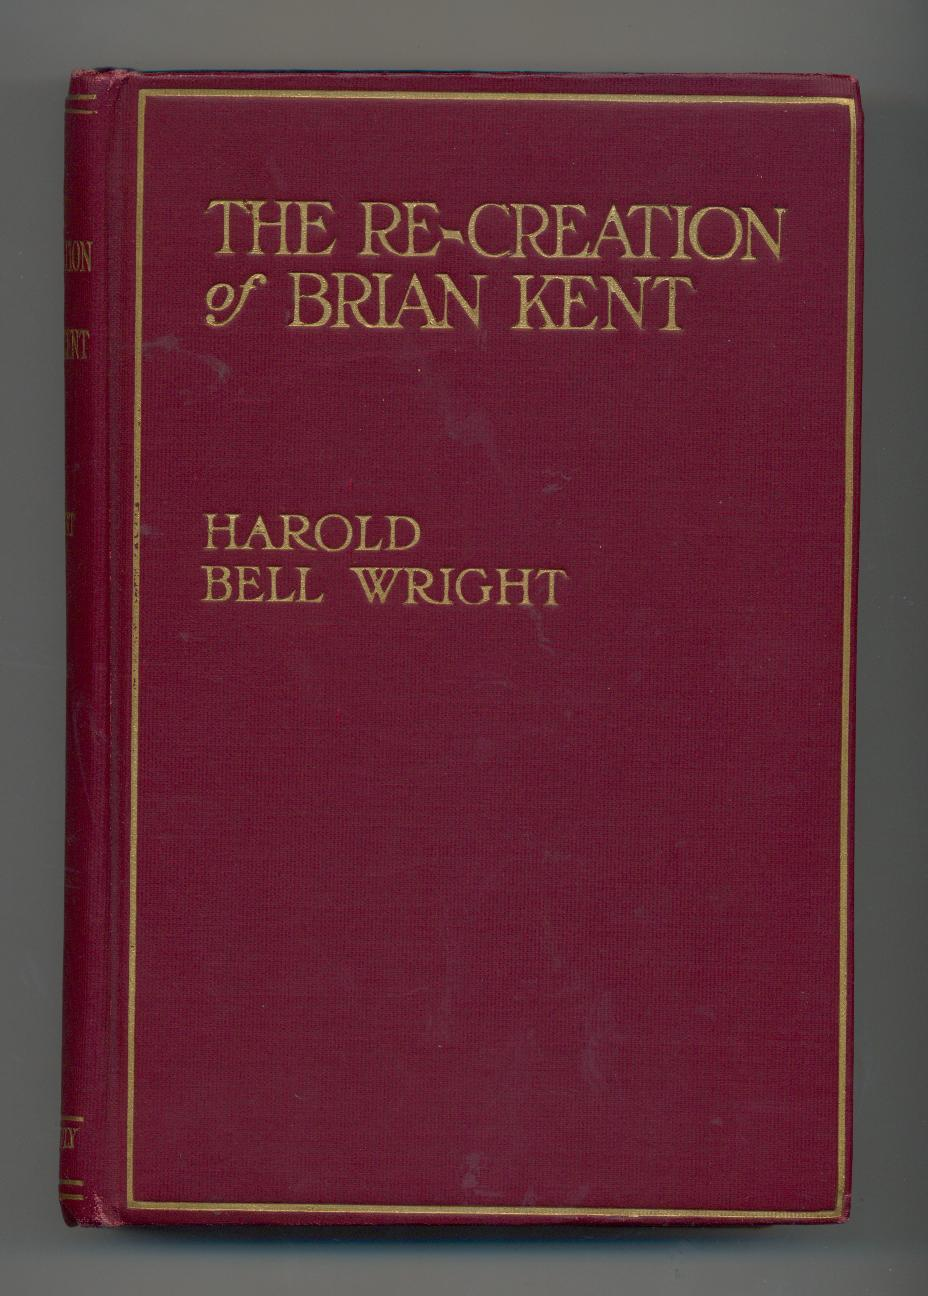 Wright--RE-CREATION OF BRIAN KENT--1919, 1st in dj image 2